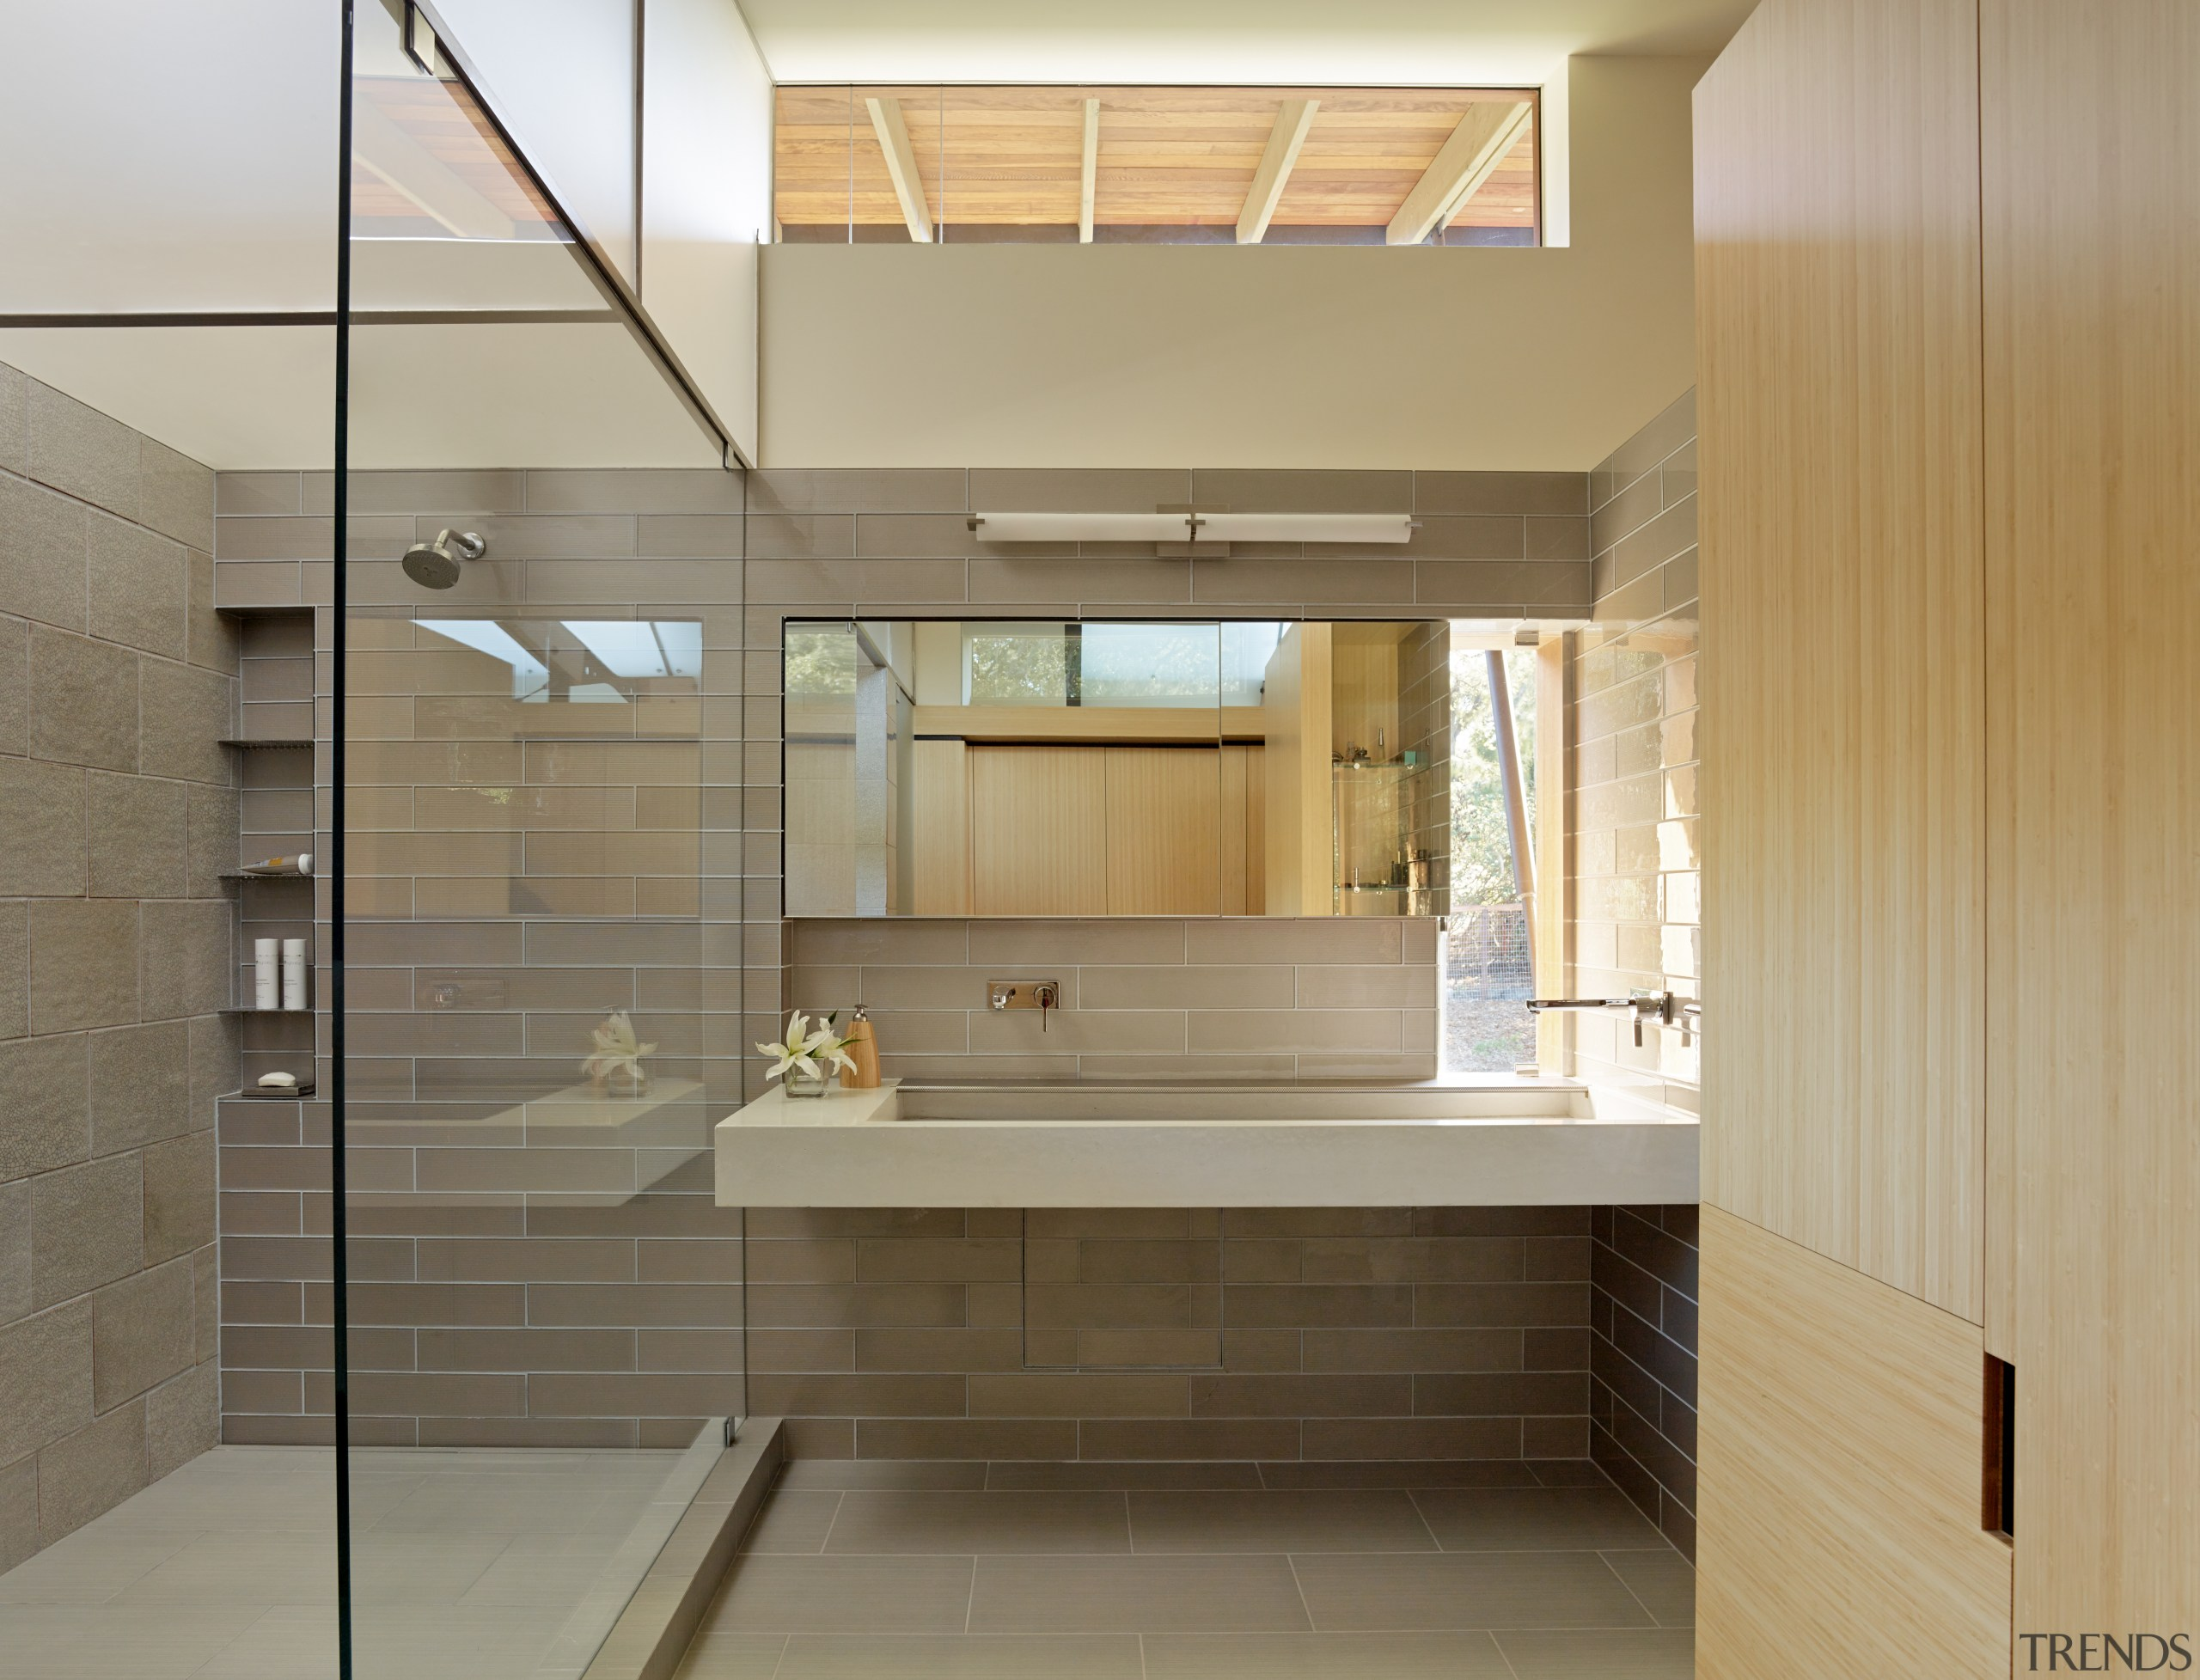 Light floods into this second storey master bathroom architecture, bathroom, cabinetry, tiled floor, interior design, shower, glass, FuTung Cheng